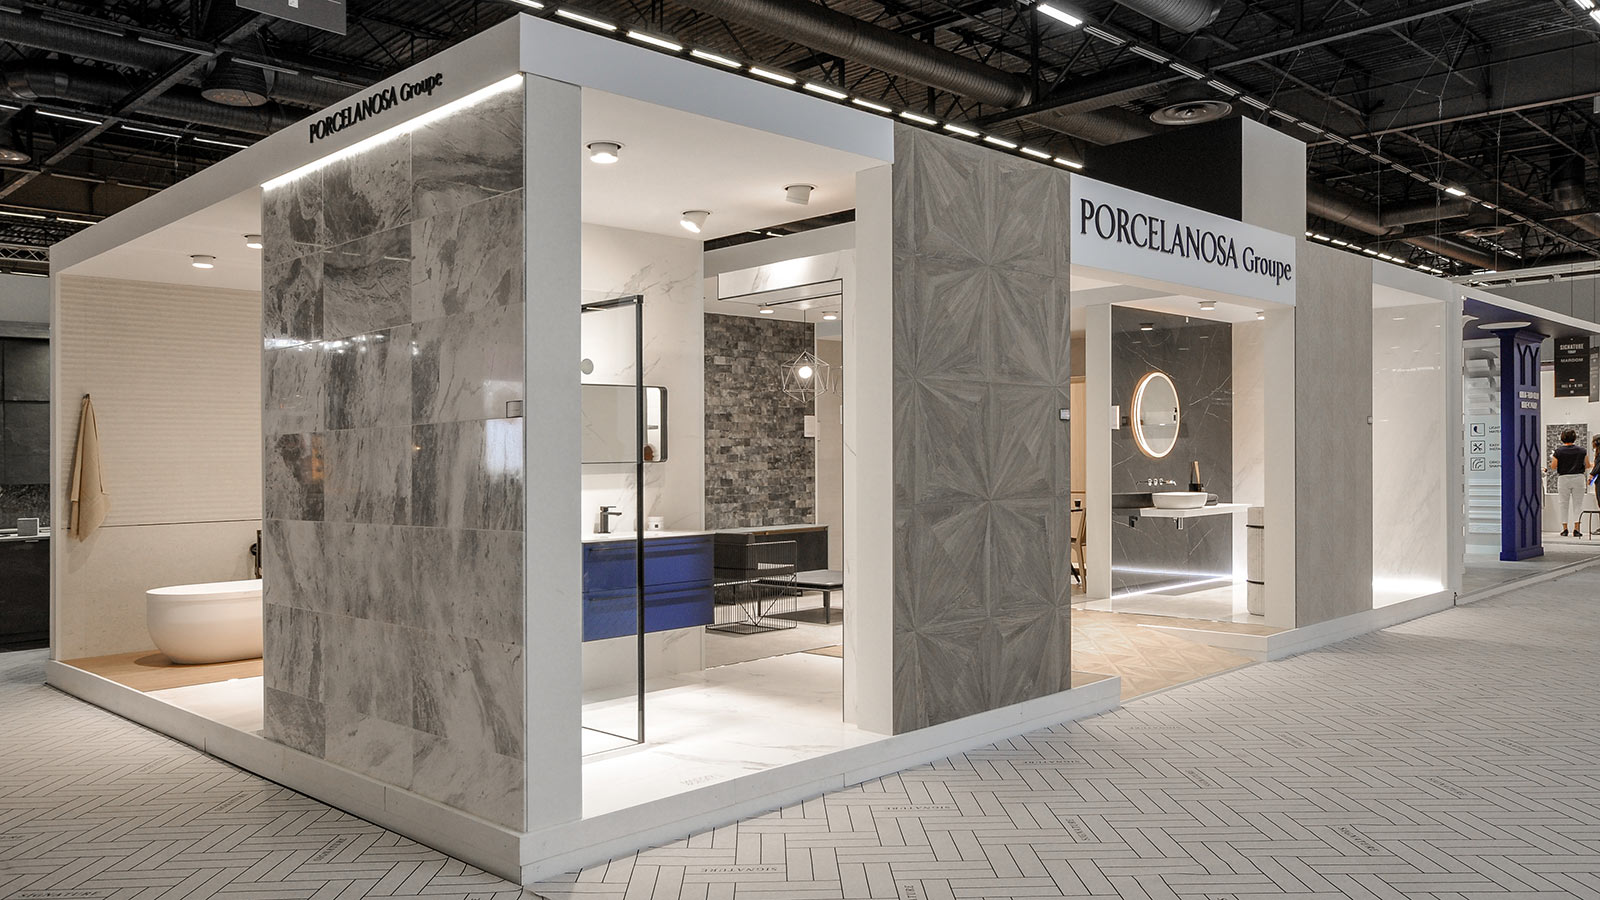 PORCELANOSA Grupo leads the way in France at the Maison & Objet  and París Design Week fairs